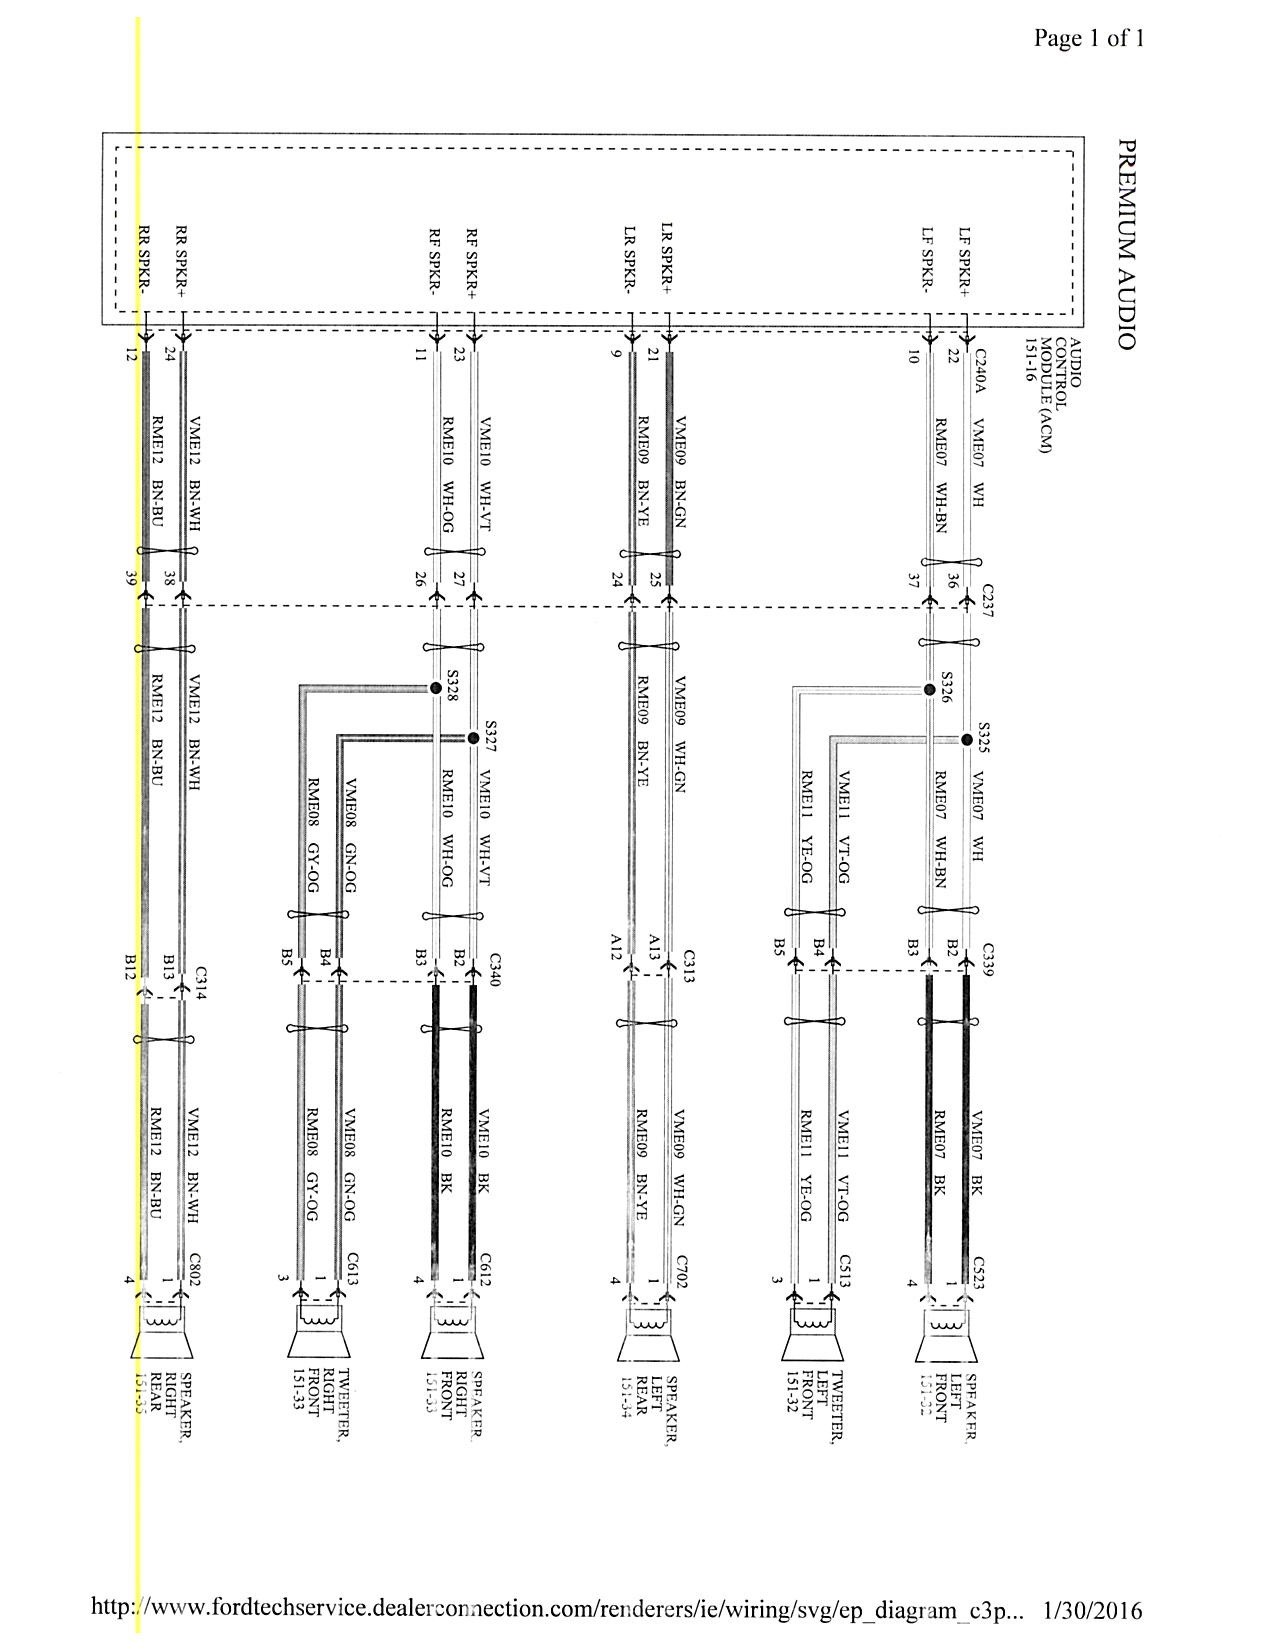 2012 ford Focus Wiring Diagram 2003 ford Focus Radio Wiring Diagram Floralfrocks and Autoctono Of 2012 ford Focus Wiring Diagram